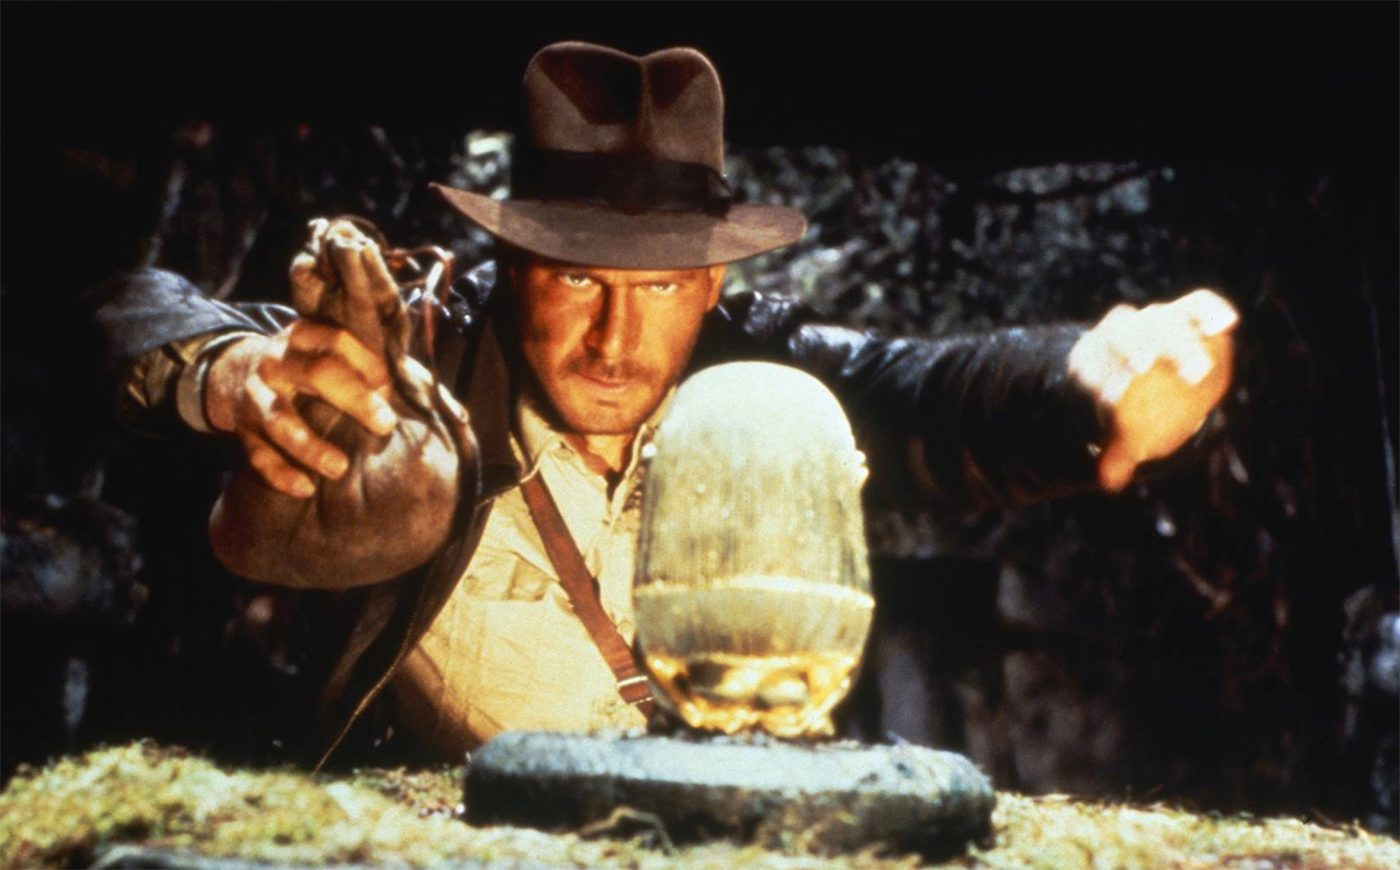 Best action movies on Netflix Canada - Raiders of the Lost Ark